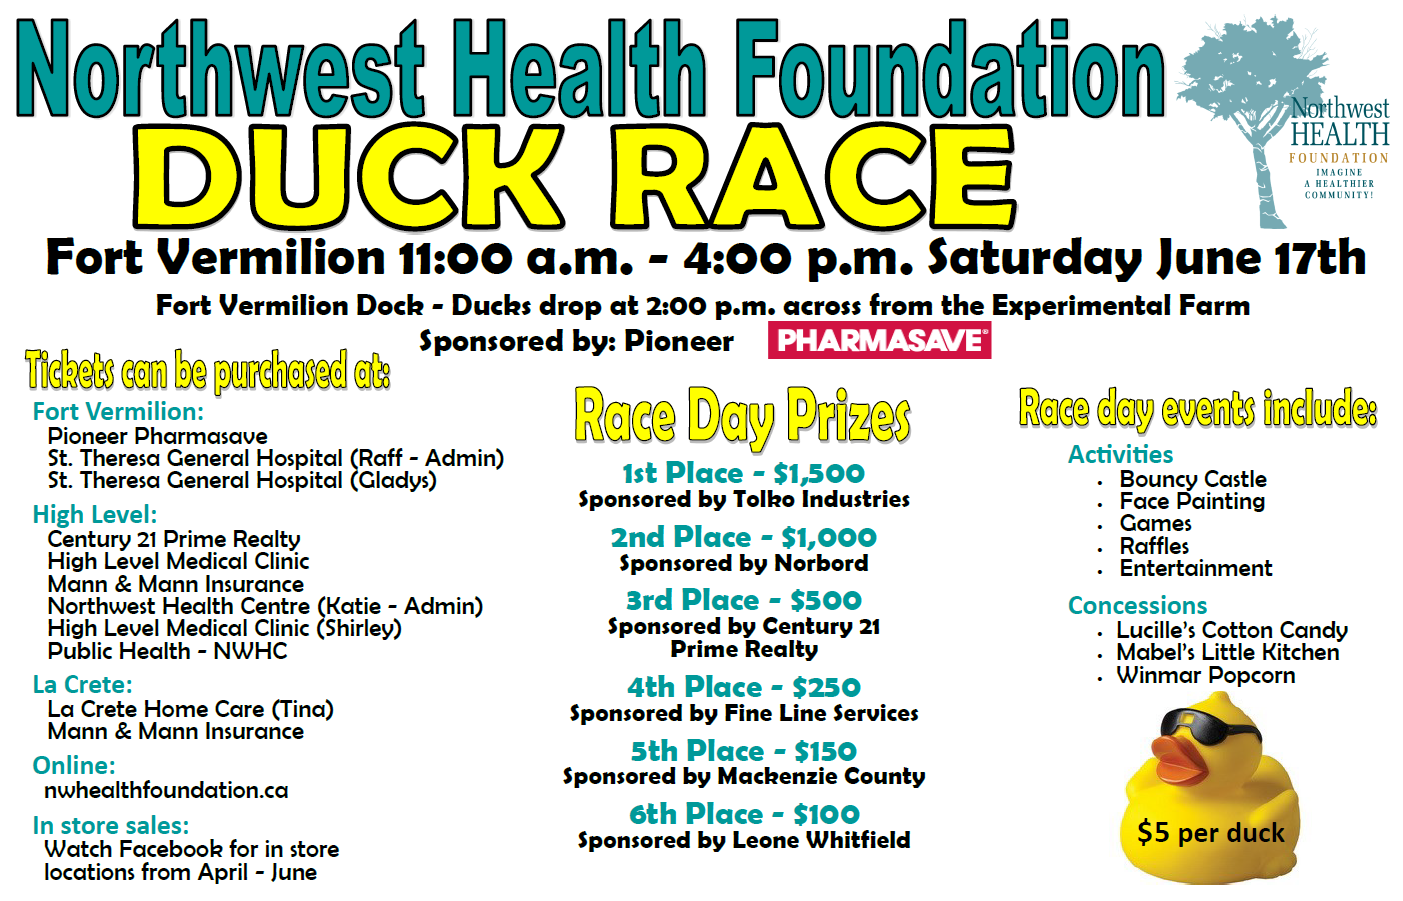 NW Health Foundation Duck Race Fort Vermilion